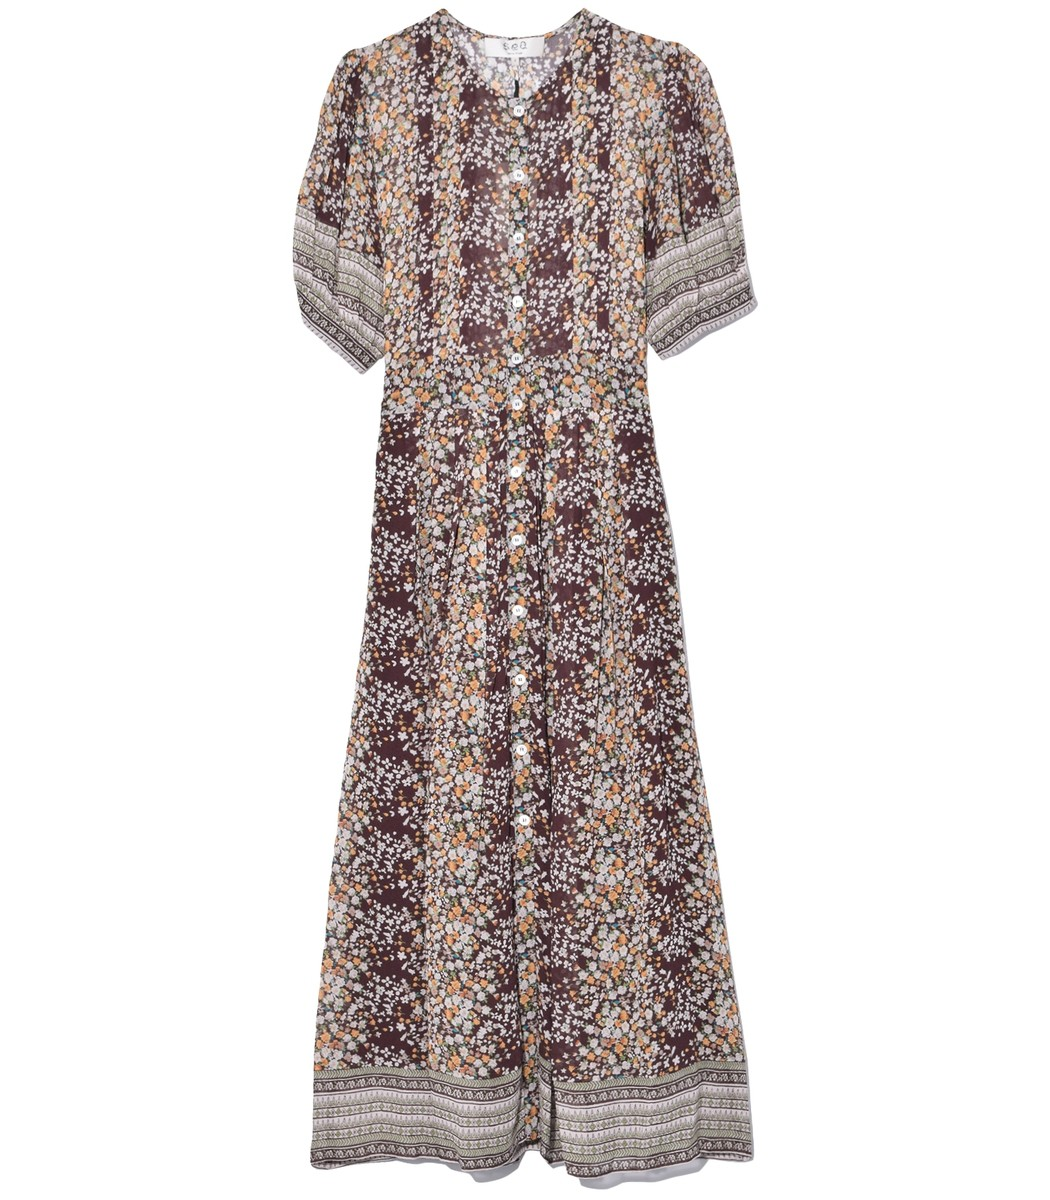 a17688e1db1e Sea Maya Short Sleeve Midi Dress in Brown Multi - ShopBAZAAR